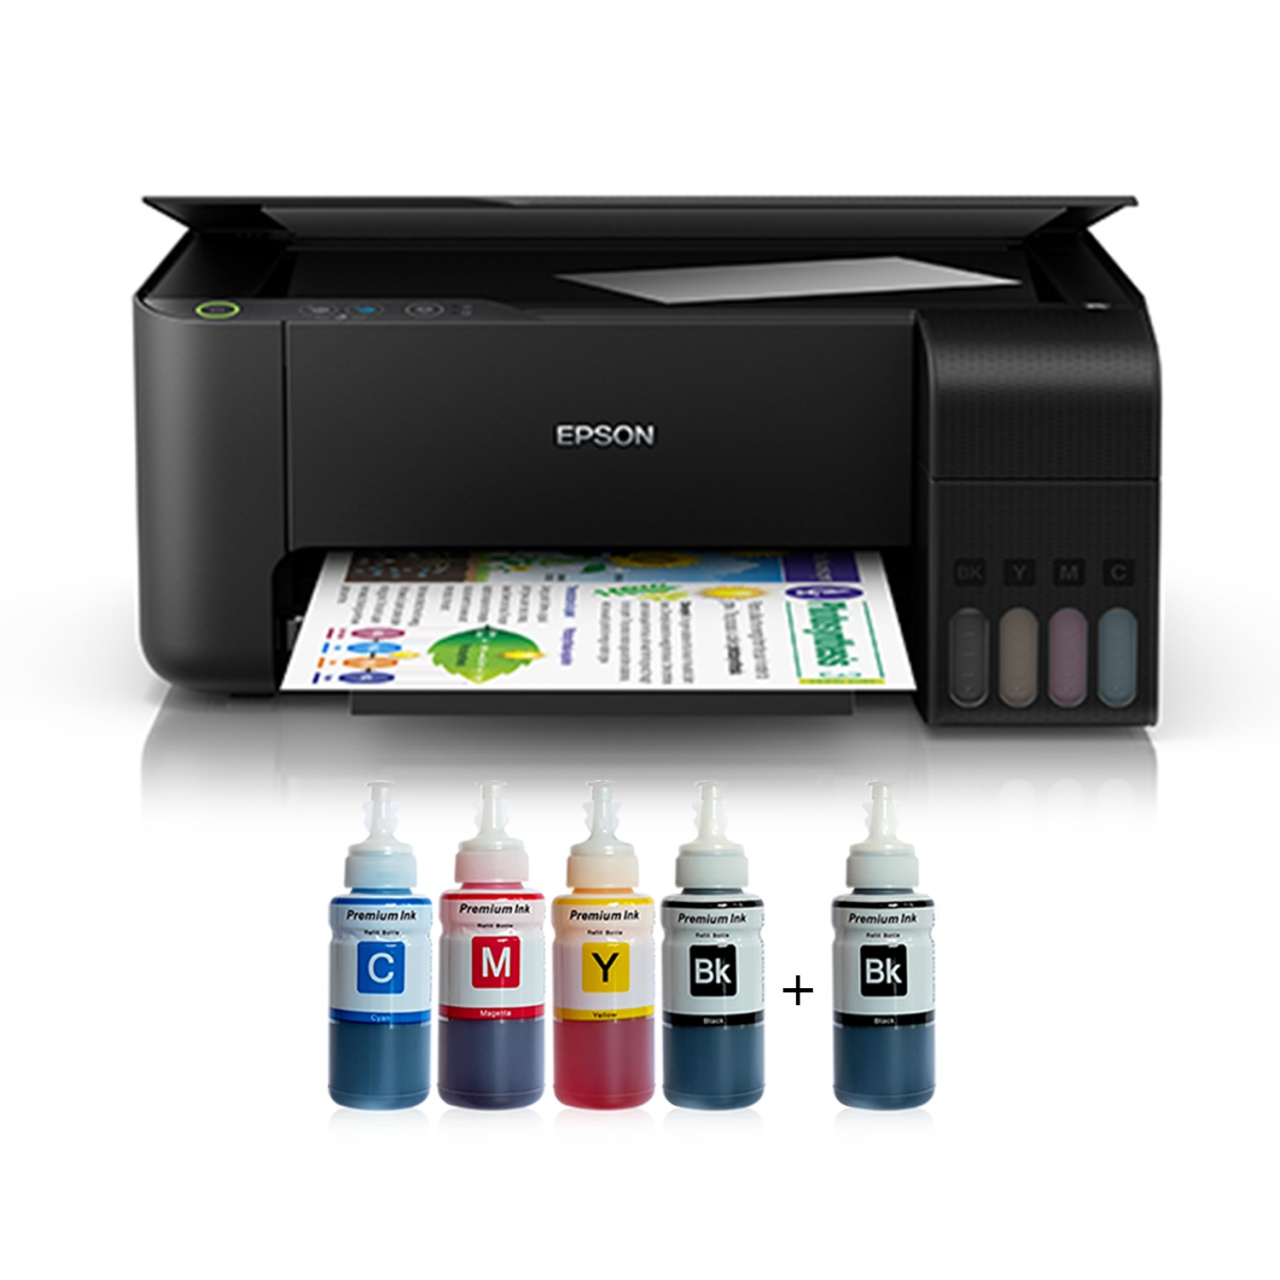 Epson Tank L3150 Photoink Ink Printer 4 Color Ending Cartridge (2 Black Ink Gift) epson L3050 Instead Coming Out Mode